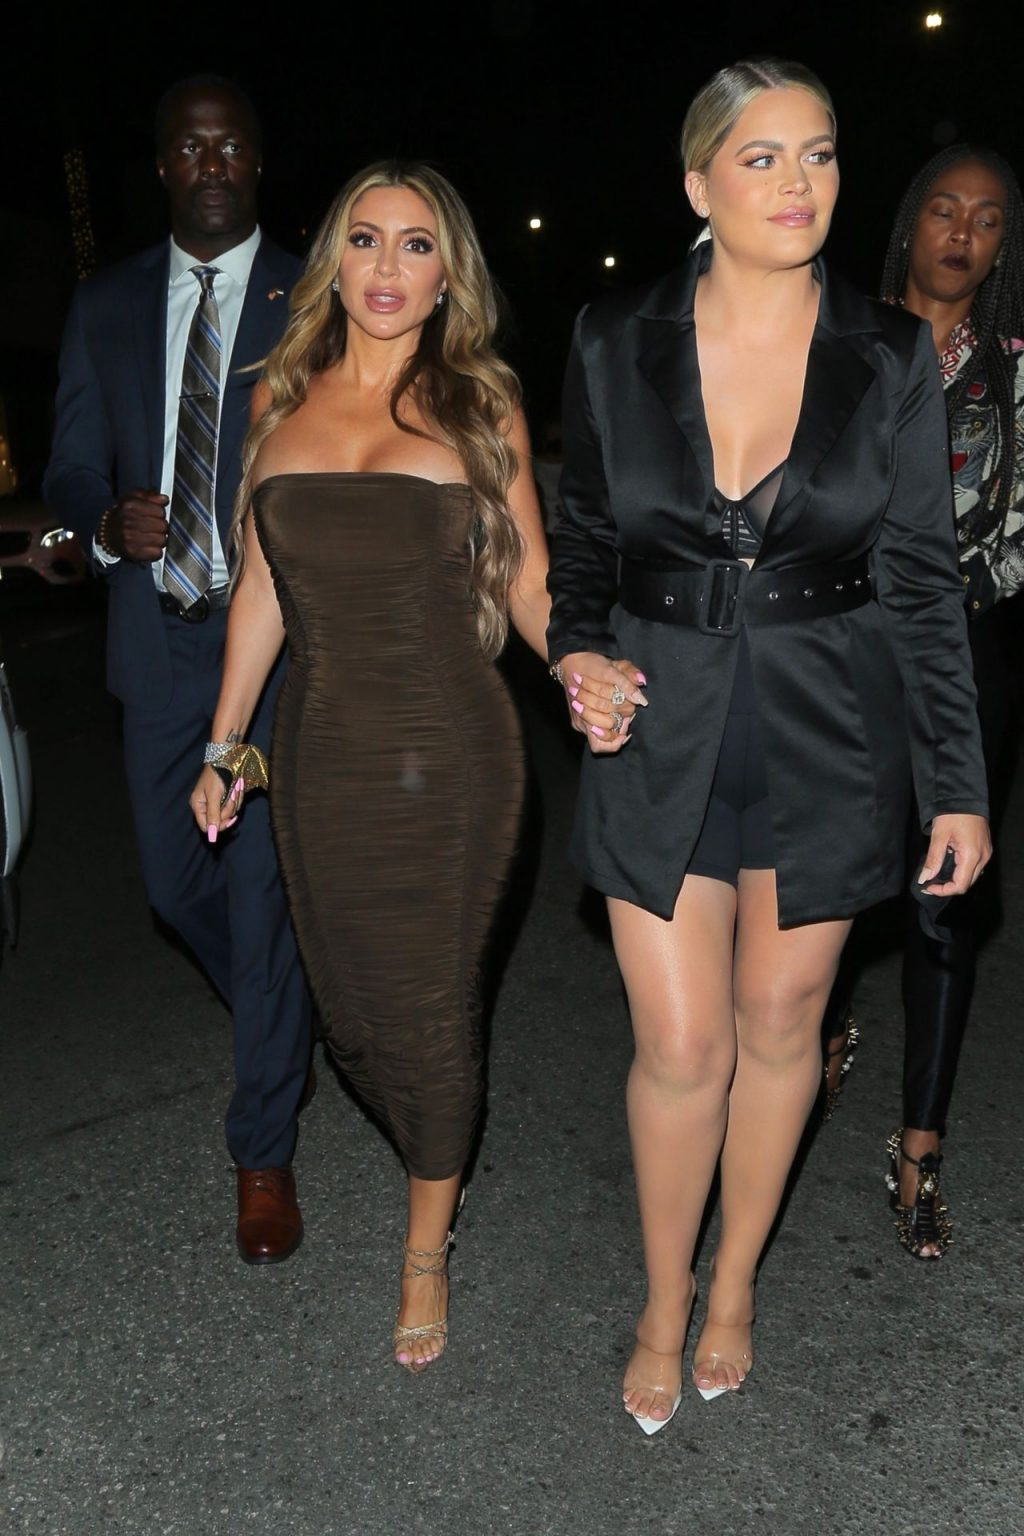 Larsa Pippen and Friend Arrive for Dinner at Il Pastaio Restaurant in Beverly Hills (24 Photos)